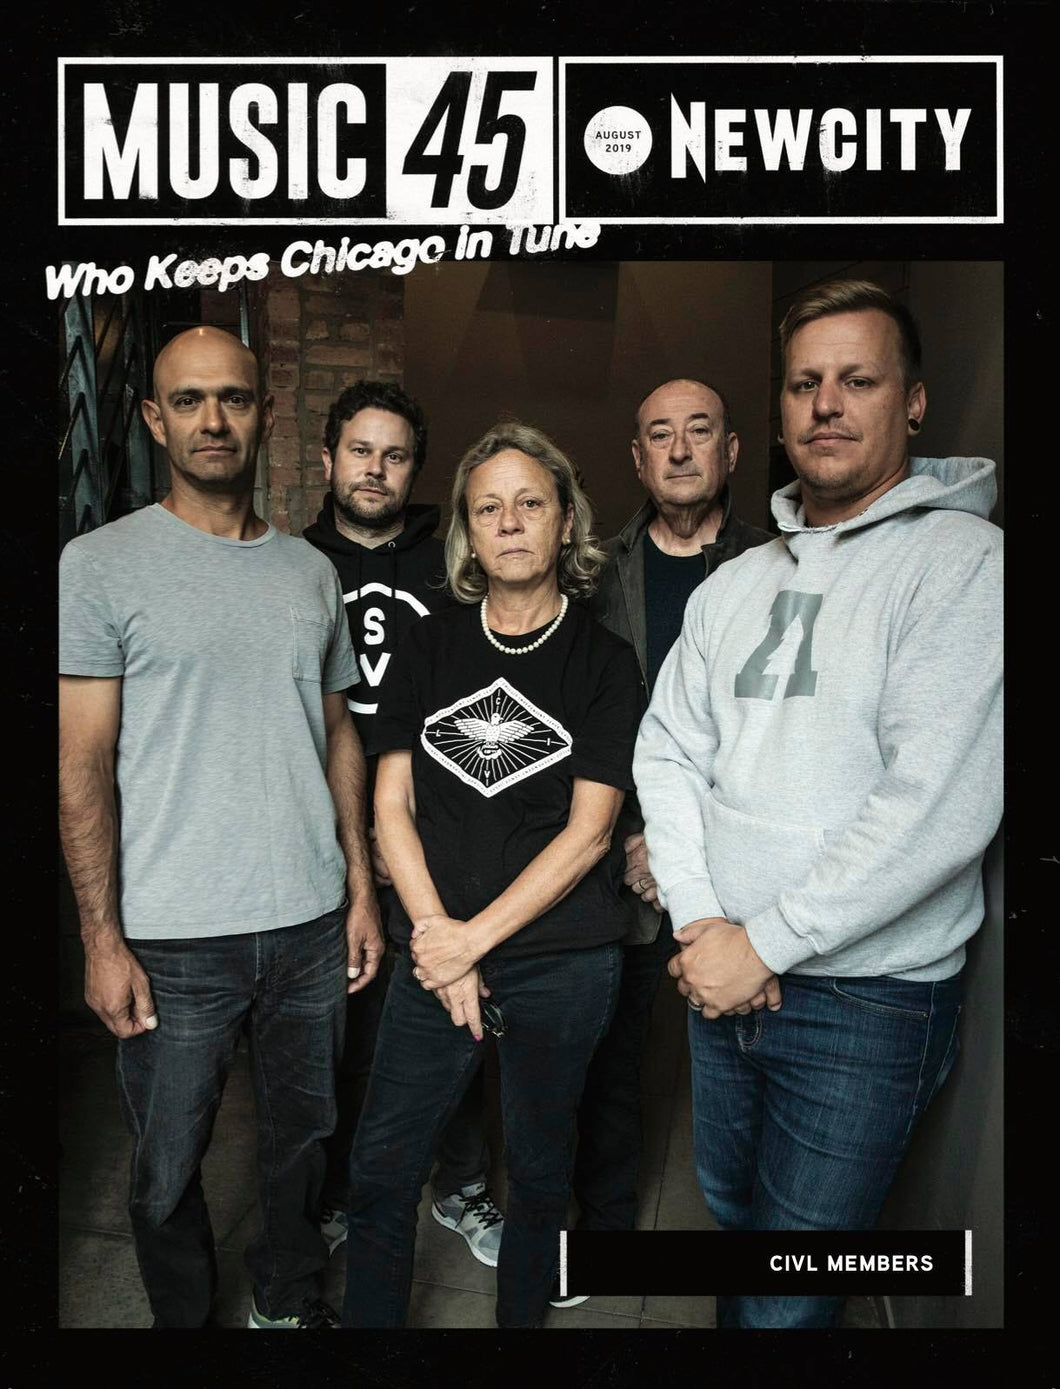 August 2019 Issue: Music 45